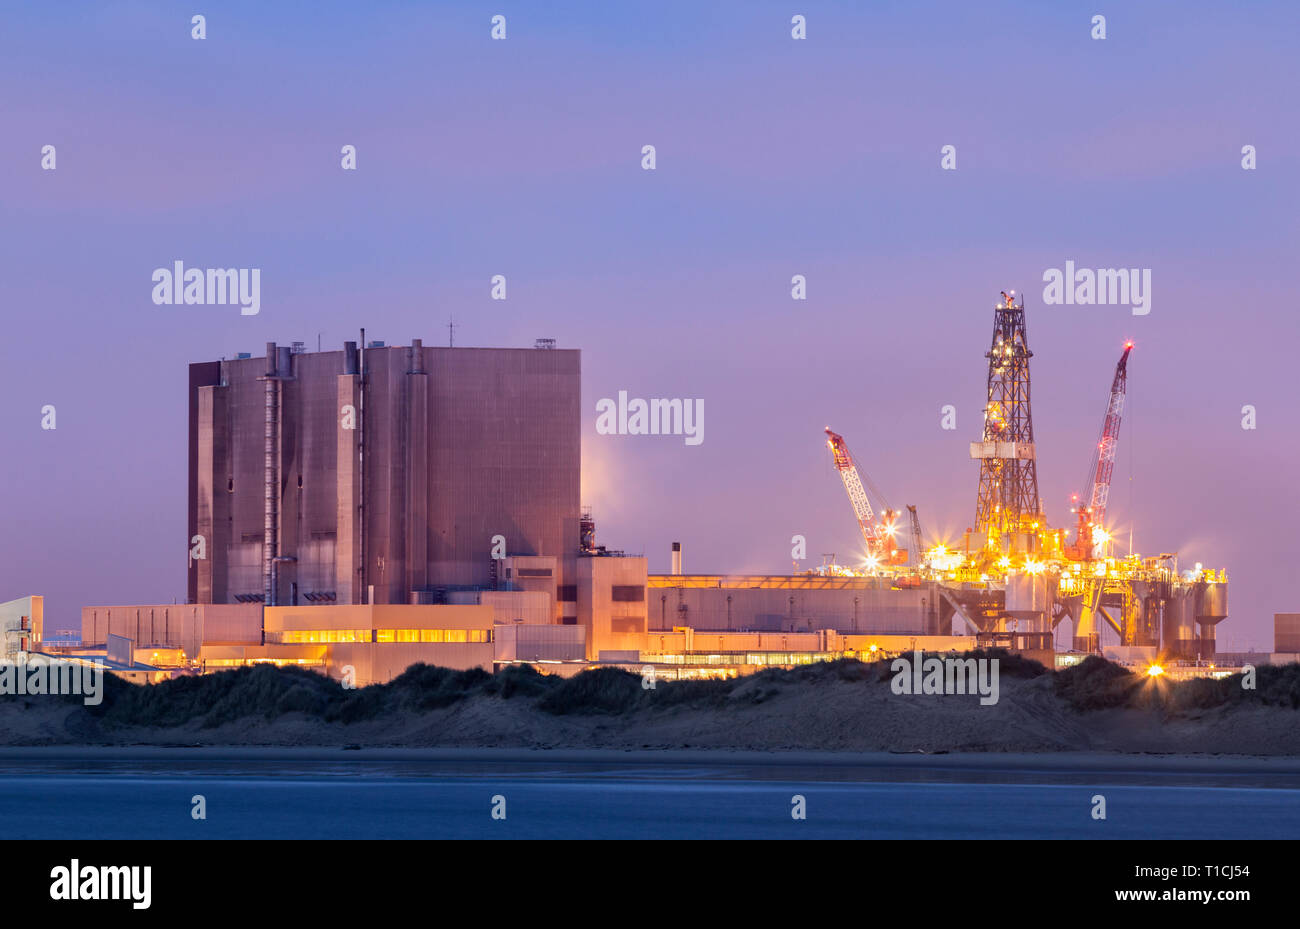 View over North Gare beach and dunes towards Hartlepool nuclear power station. UK. - Stock Image